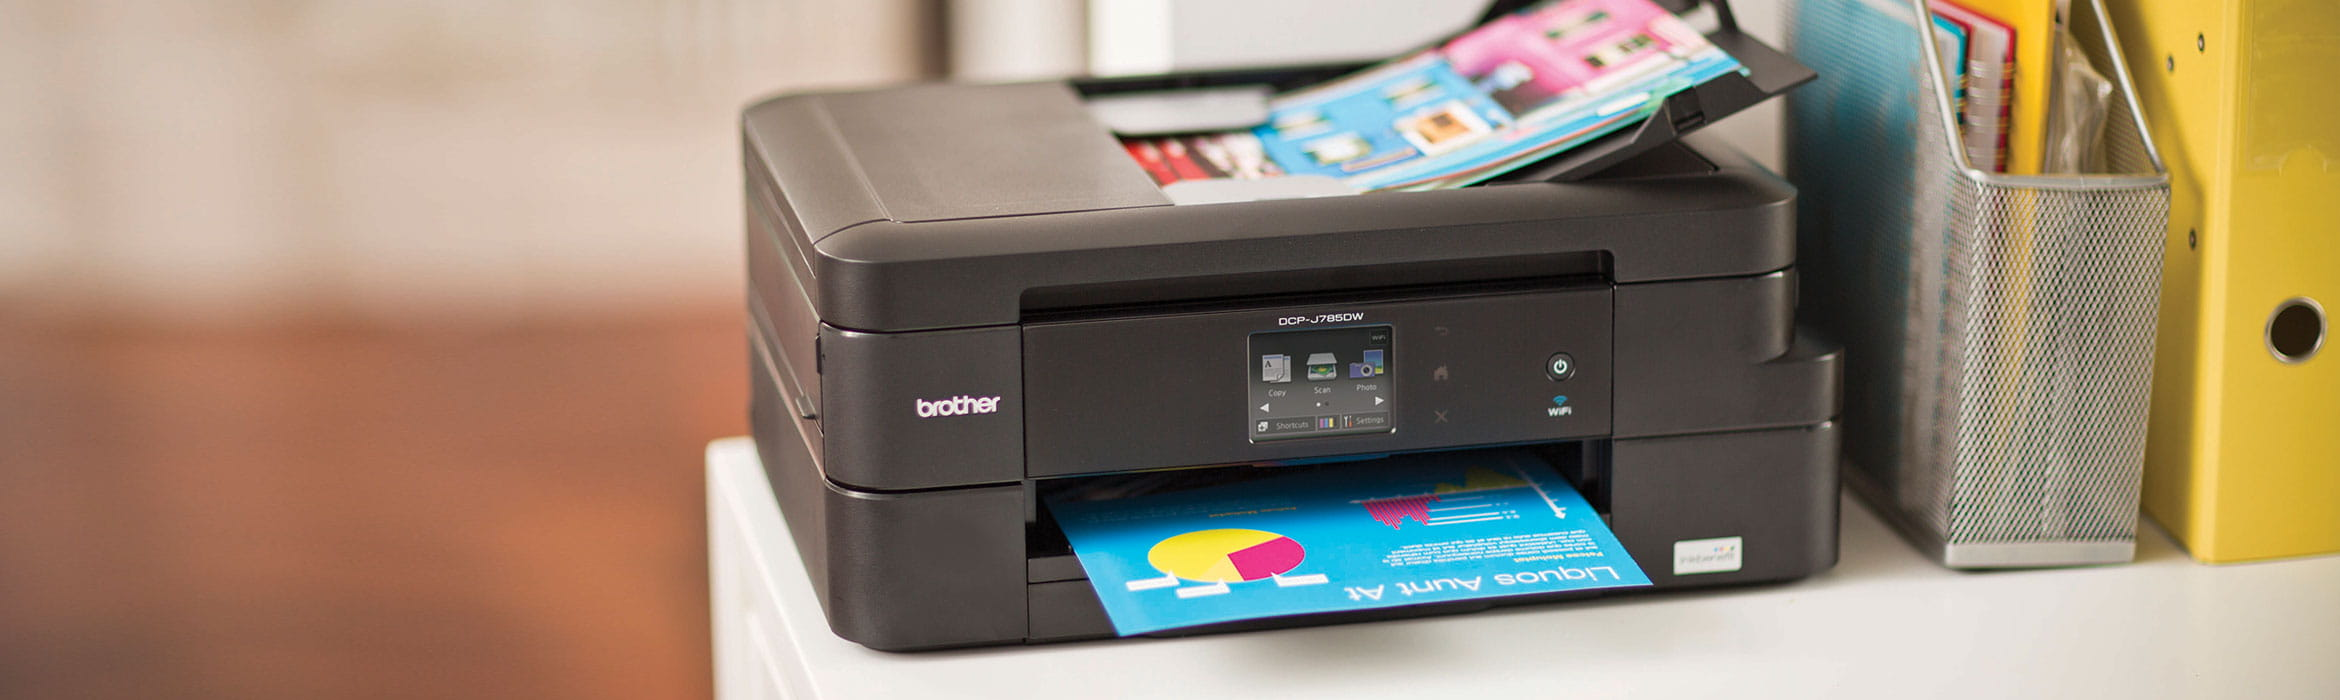 at home brother printers